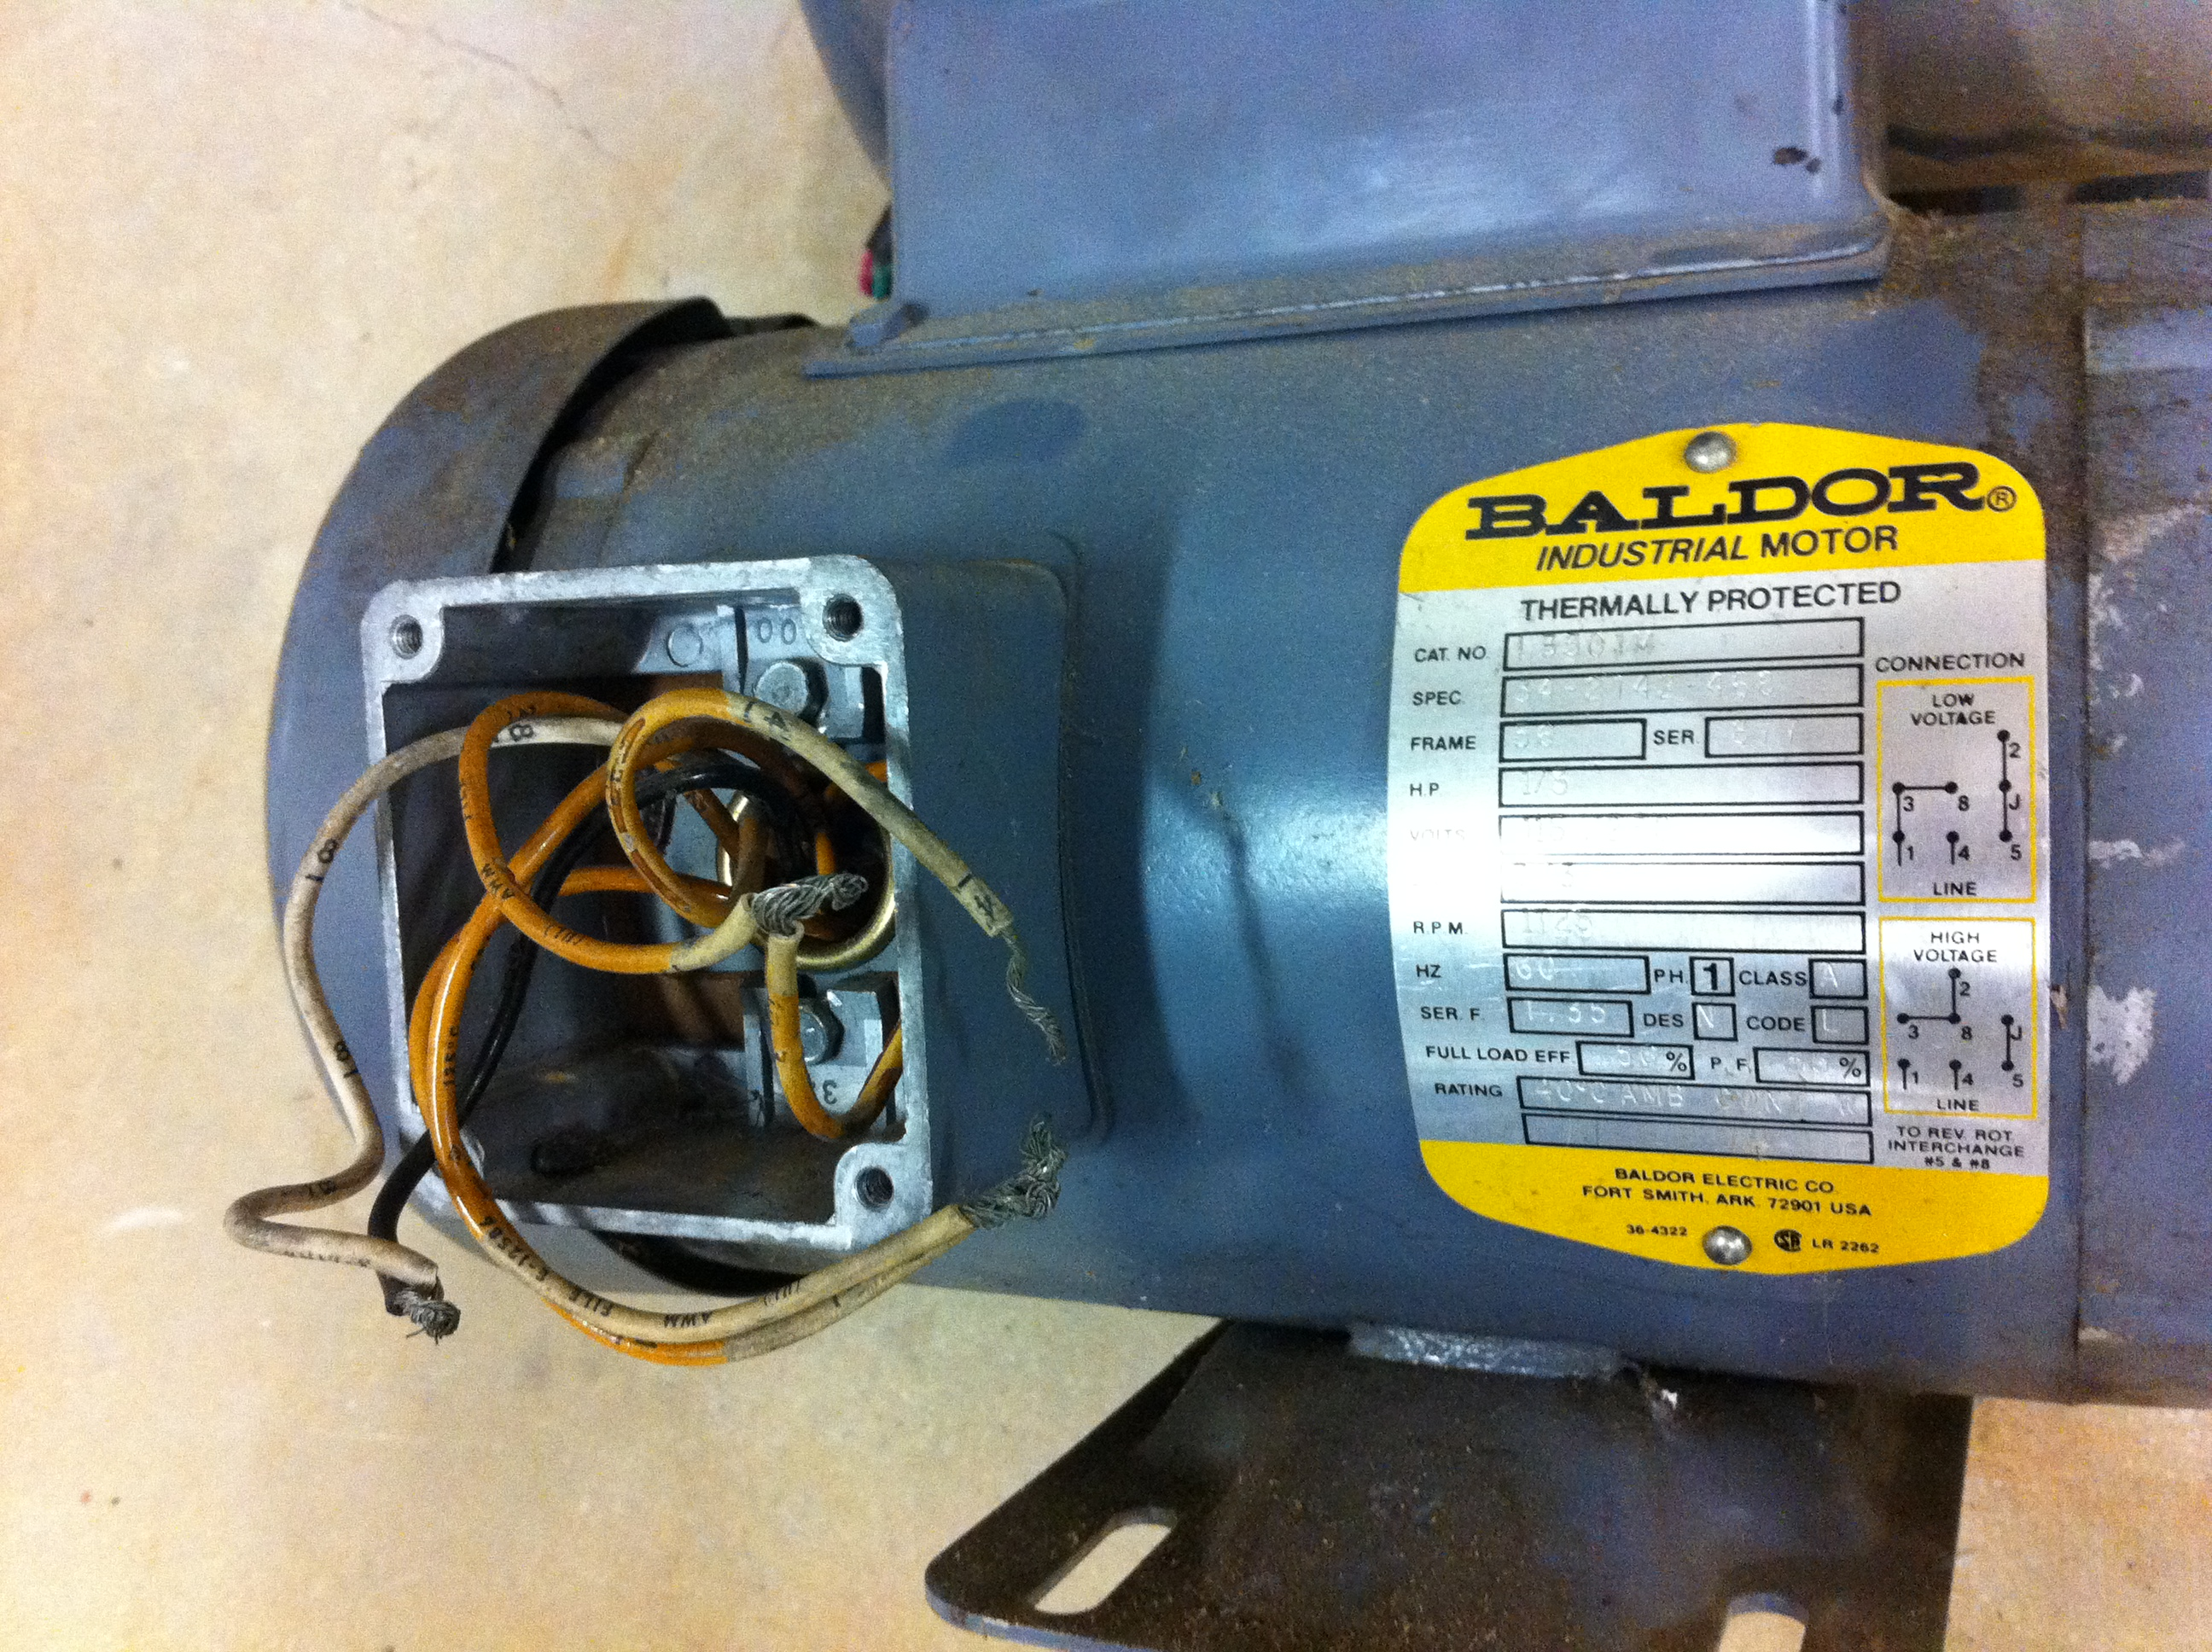 Help Wiring Baldor Motor The Garage Journal Board